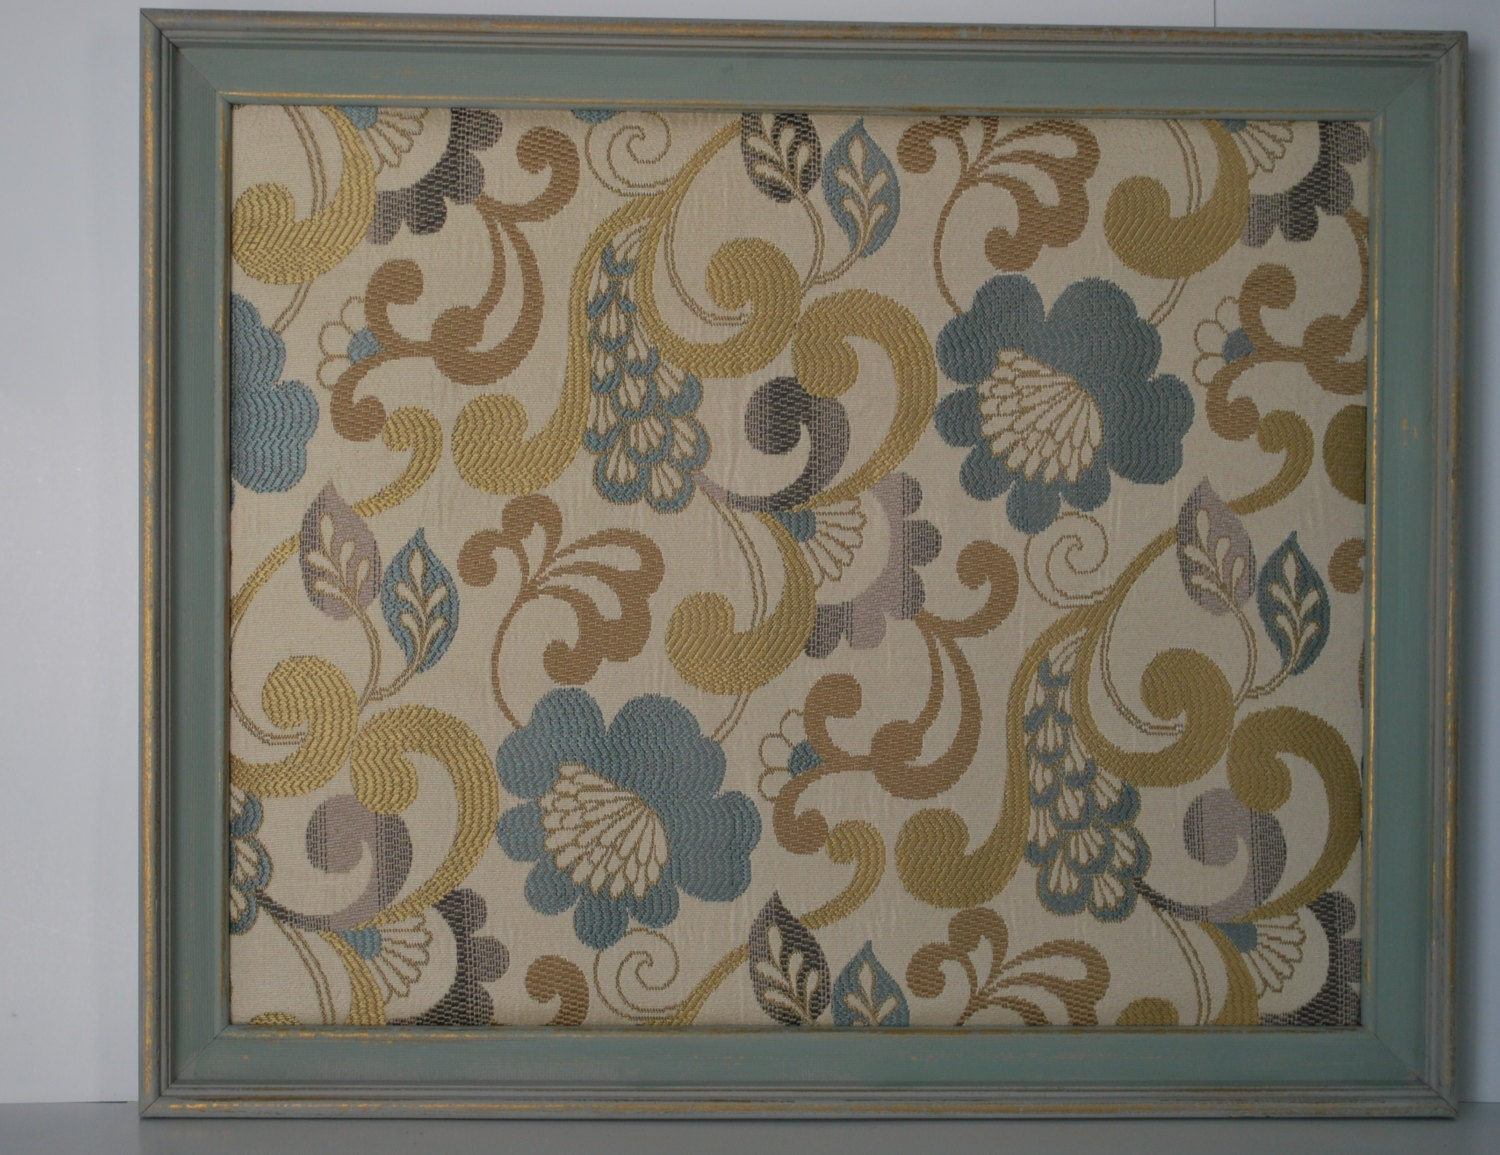 Cork Board 60's Wood Frame Decorative Destressed. Wilton School Of Cake Decorating. Cheap Home Decor Ideas. Decorative Ceilings. Decorative Ceramic Vases. Conference Room Signs. Super Bowl Decorating Ideas. Living Room Curtains. Living Room Cabinets